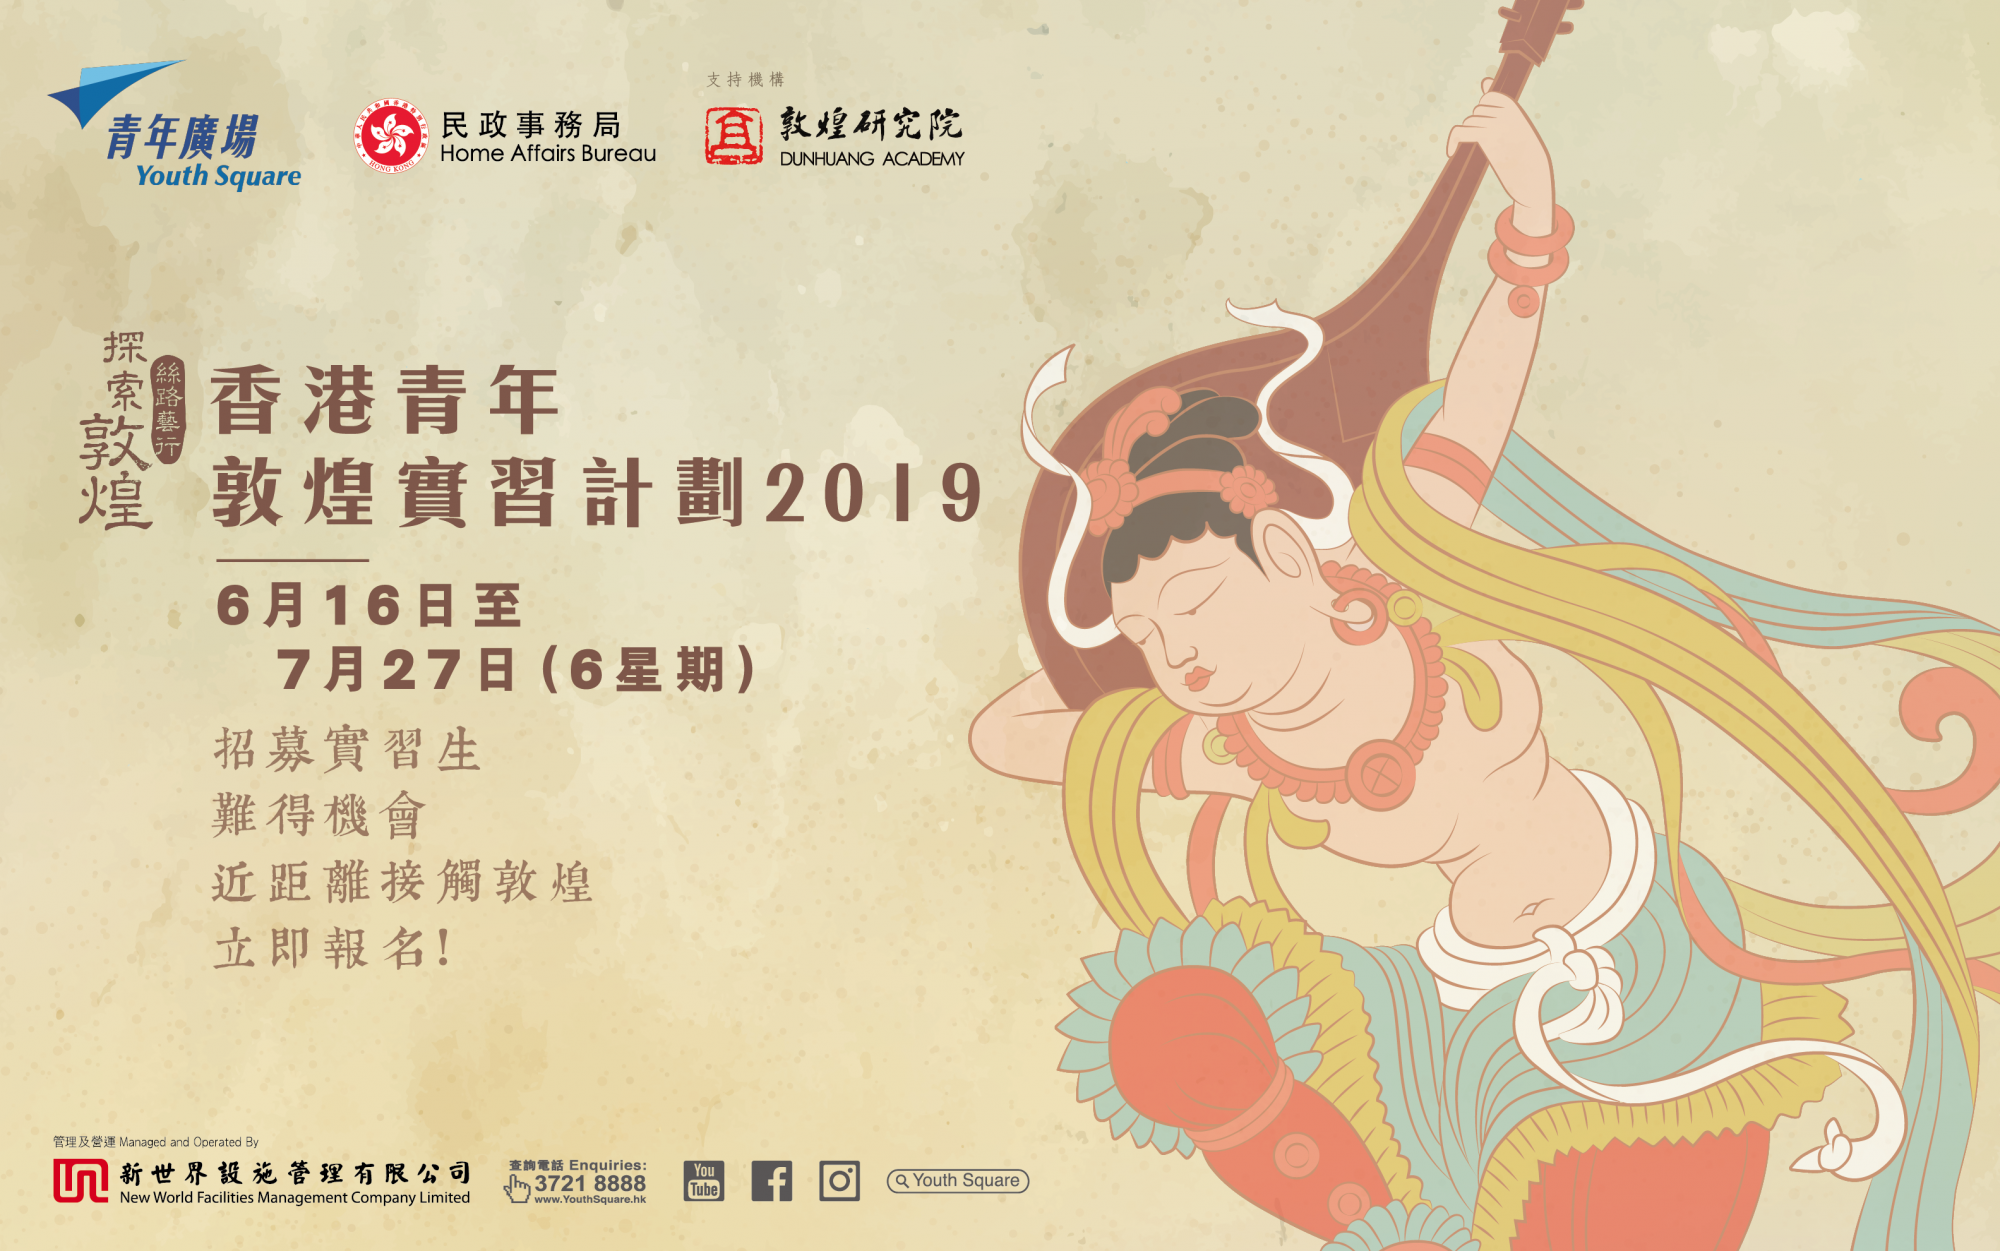 Dunhuang Youth Internship Program 2019